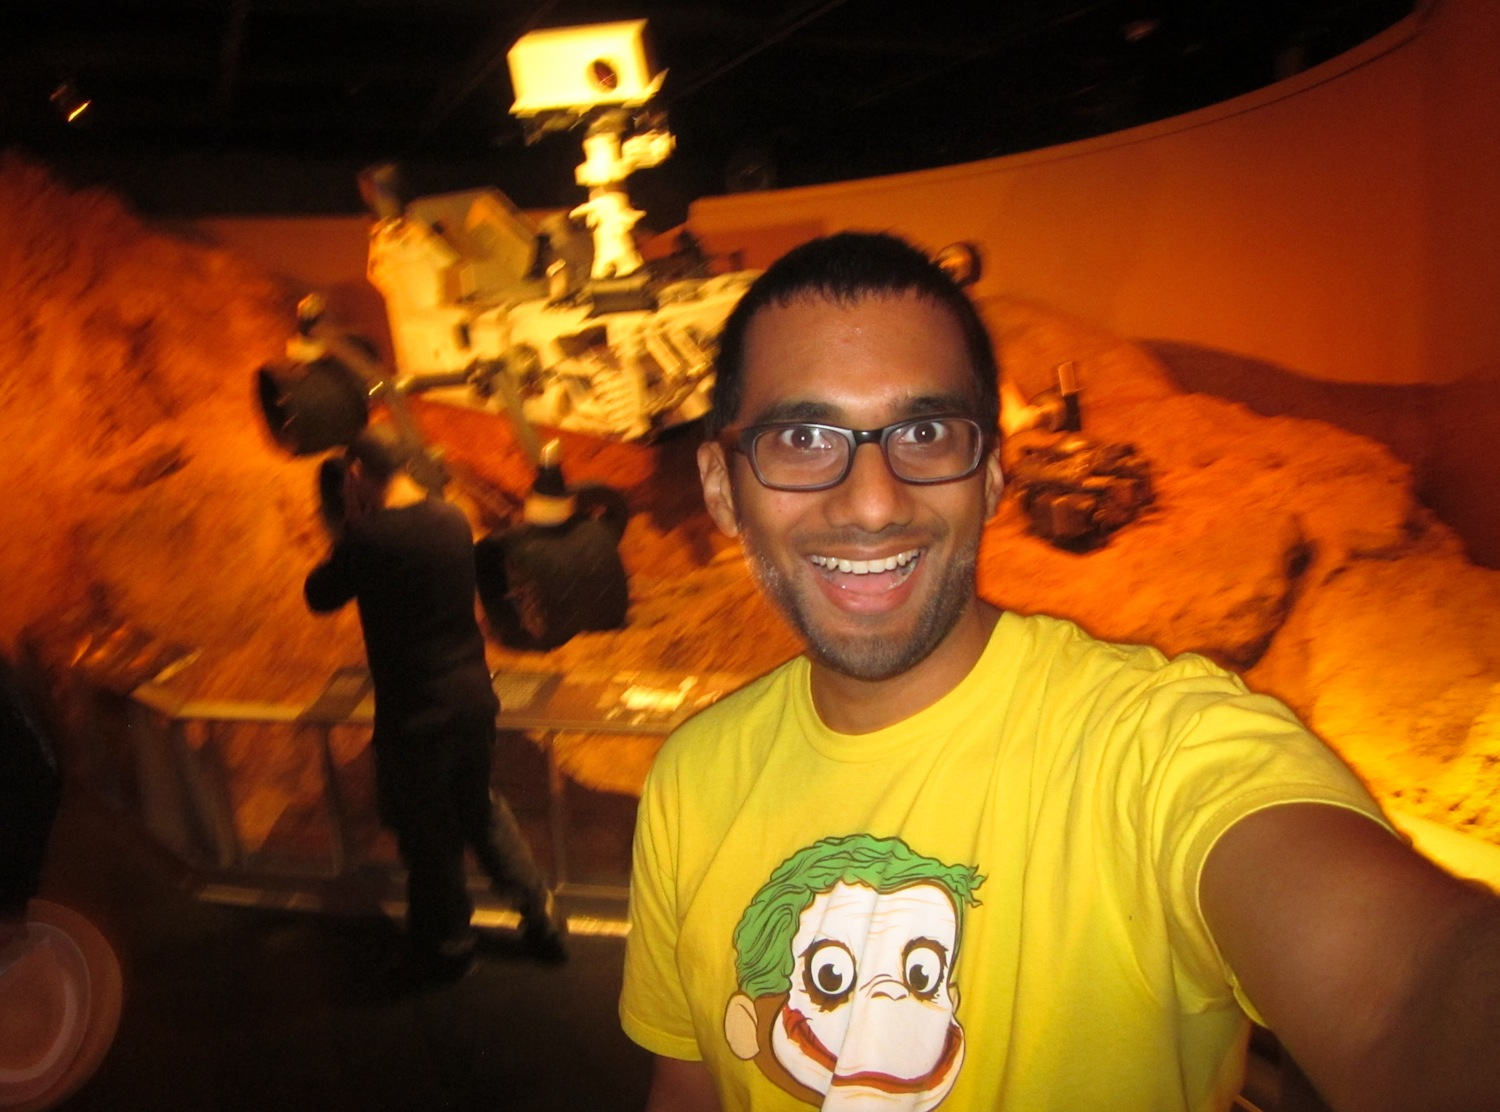 Selfie with a model of the NASA Mars Curiosity Rover, at American Museum of Natural History, 2012